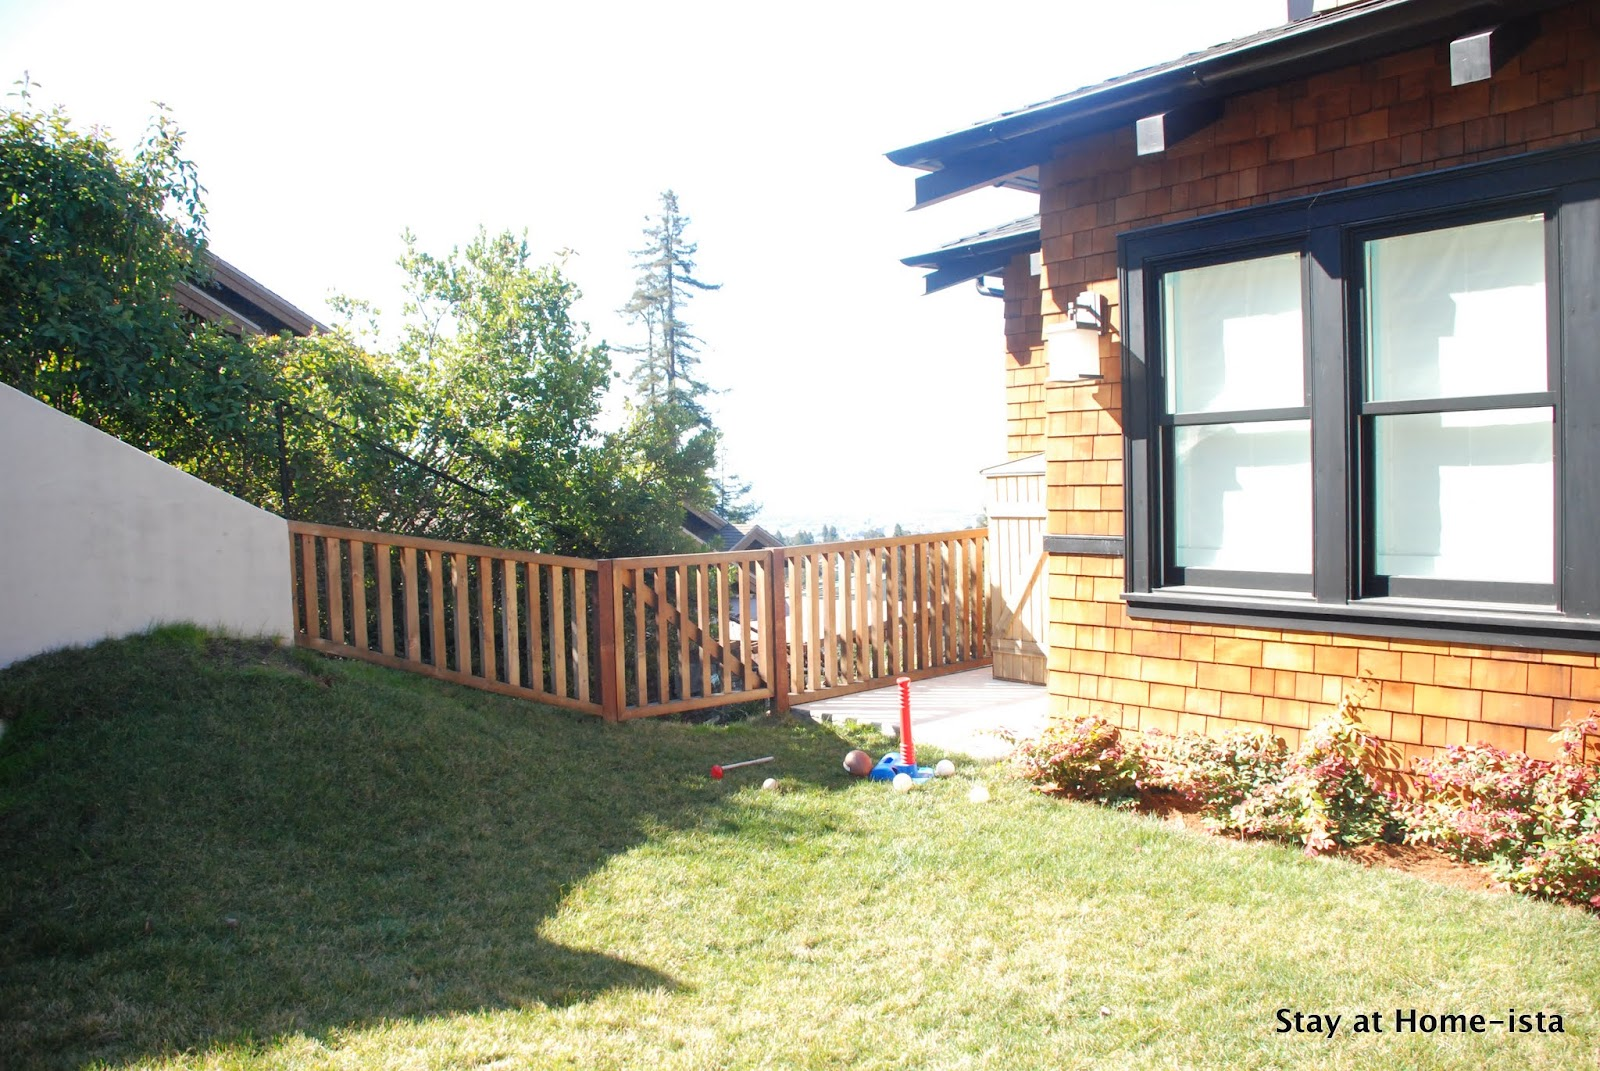 Stay At Home Ista A Backyard Update